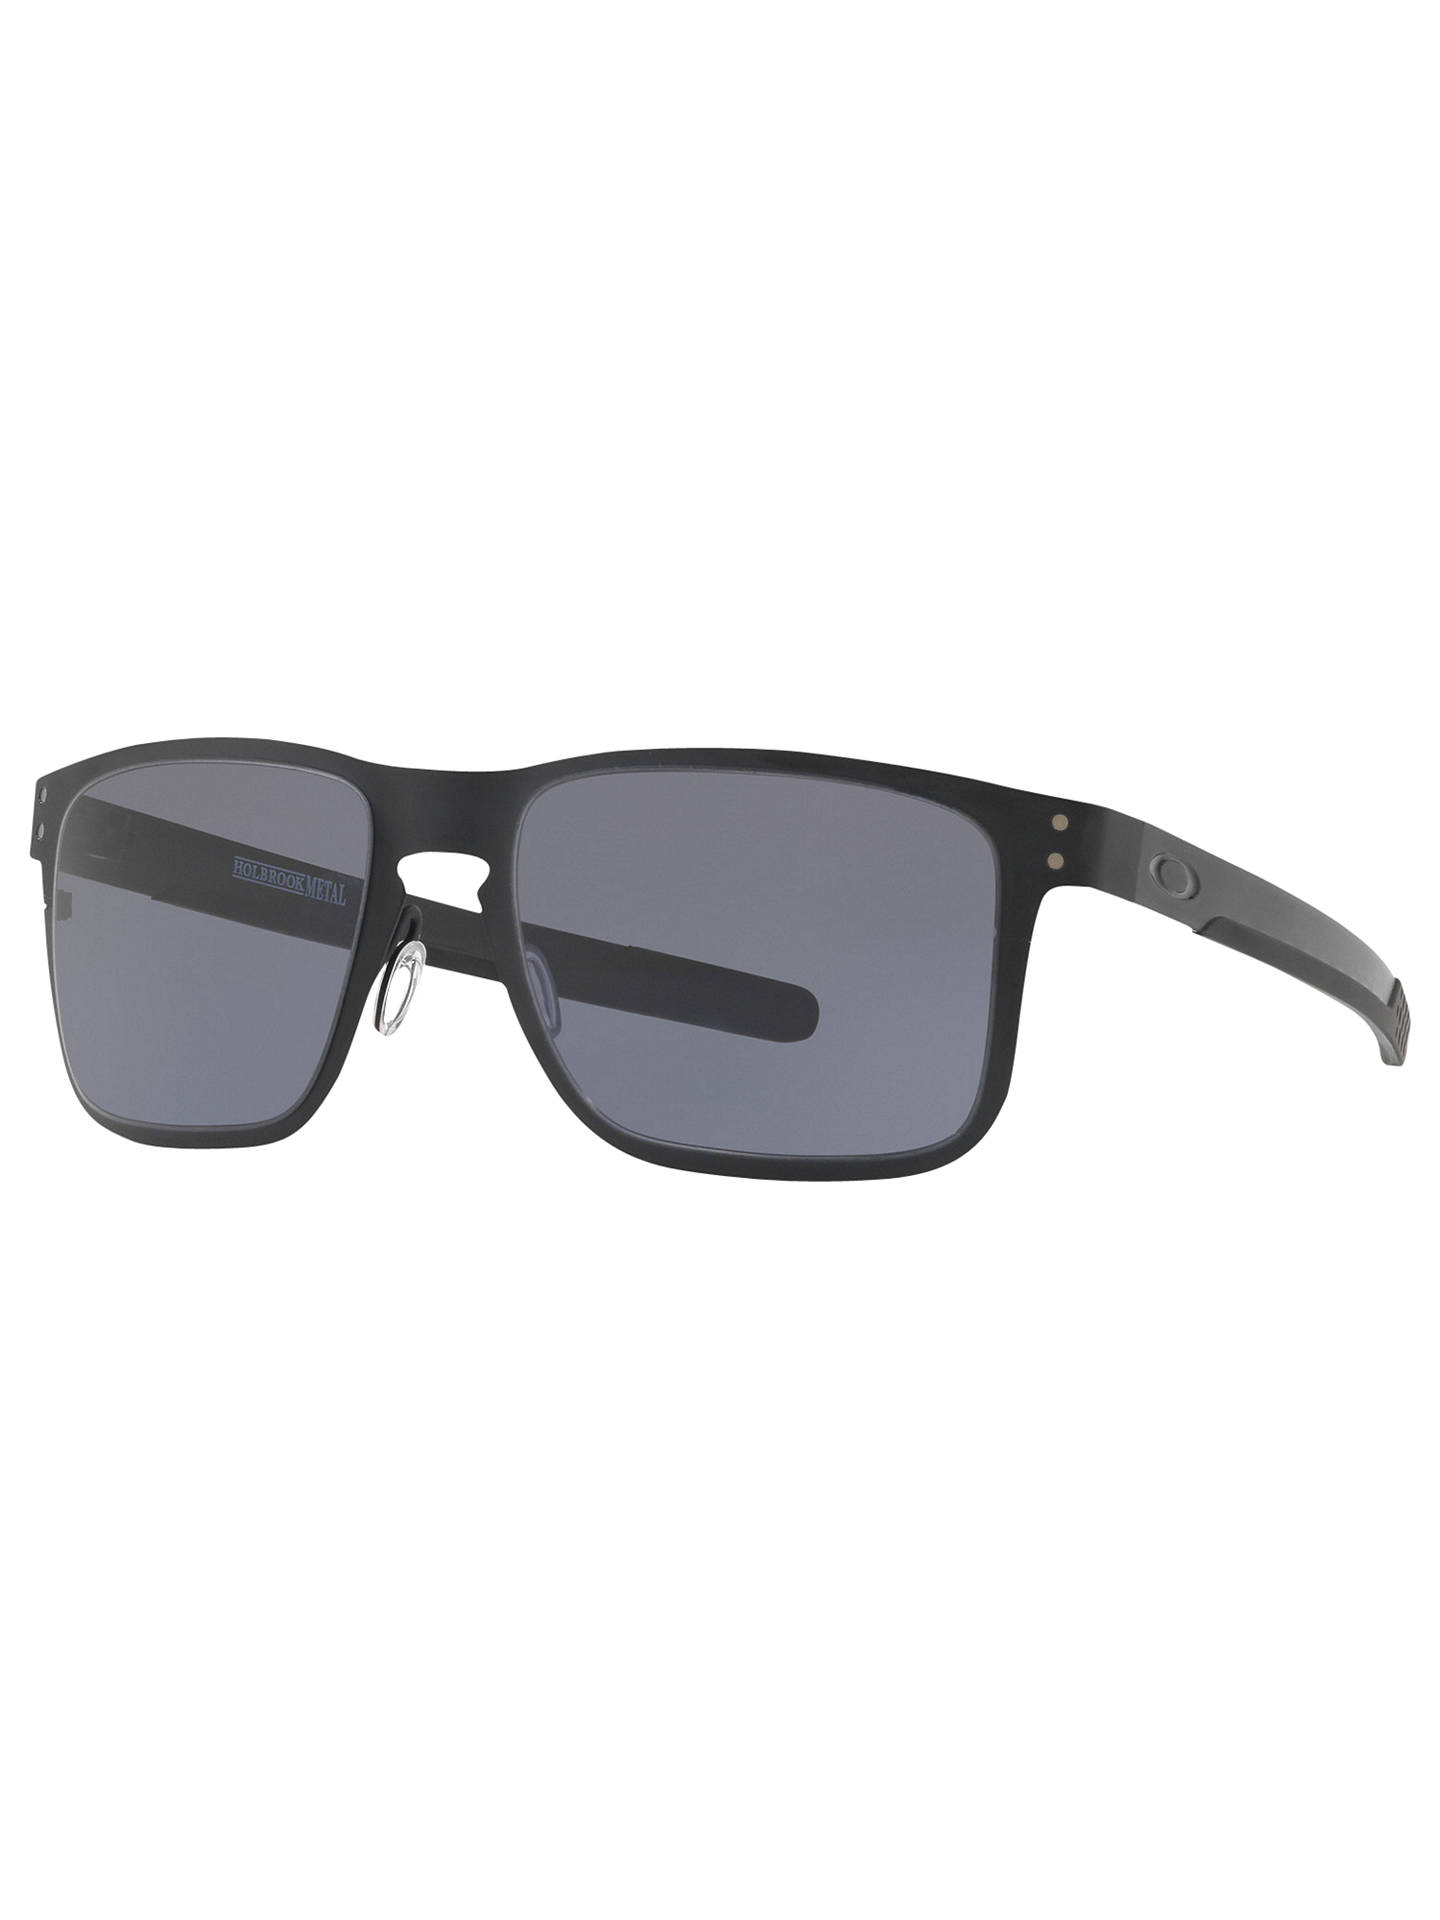 561fe40f4c7 ... polarized 5dd6b dd0a3  cheapest buyoakley oo4123 mens holbrook metal  square sunglasses black grey online at johnlewis. 798f6 fd444